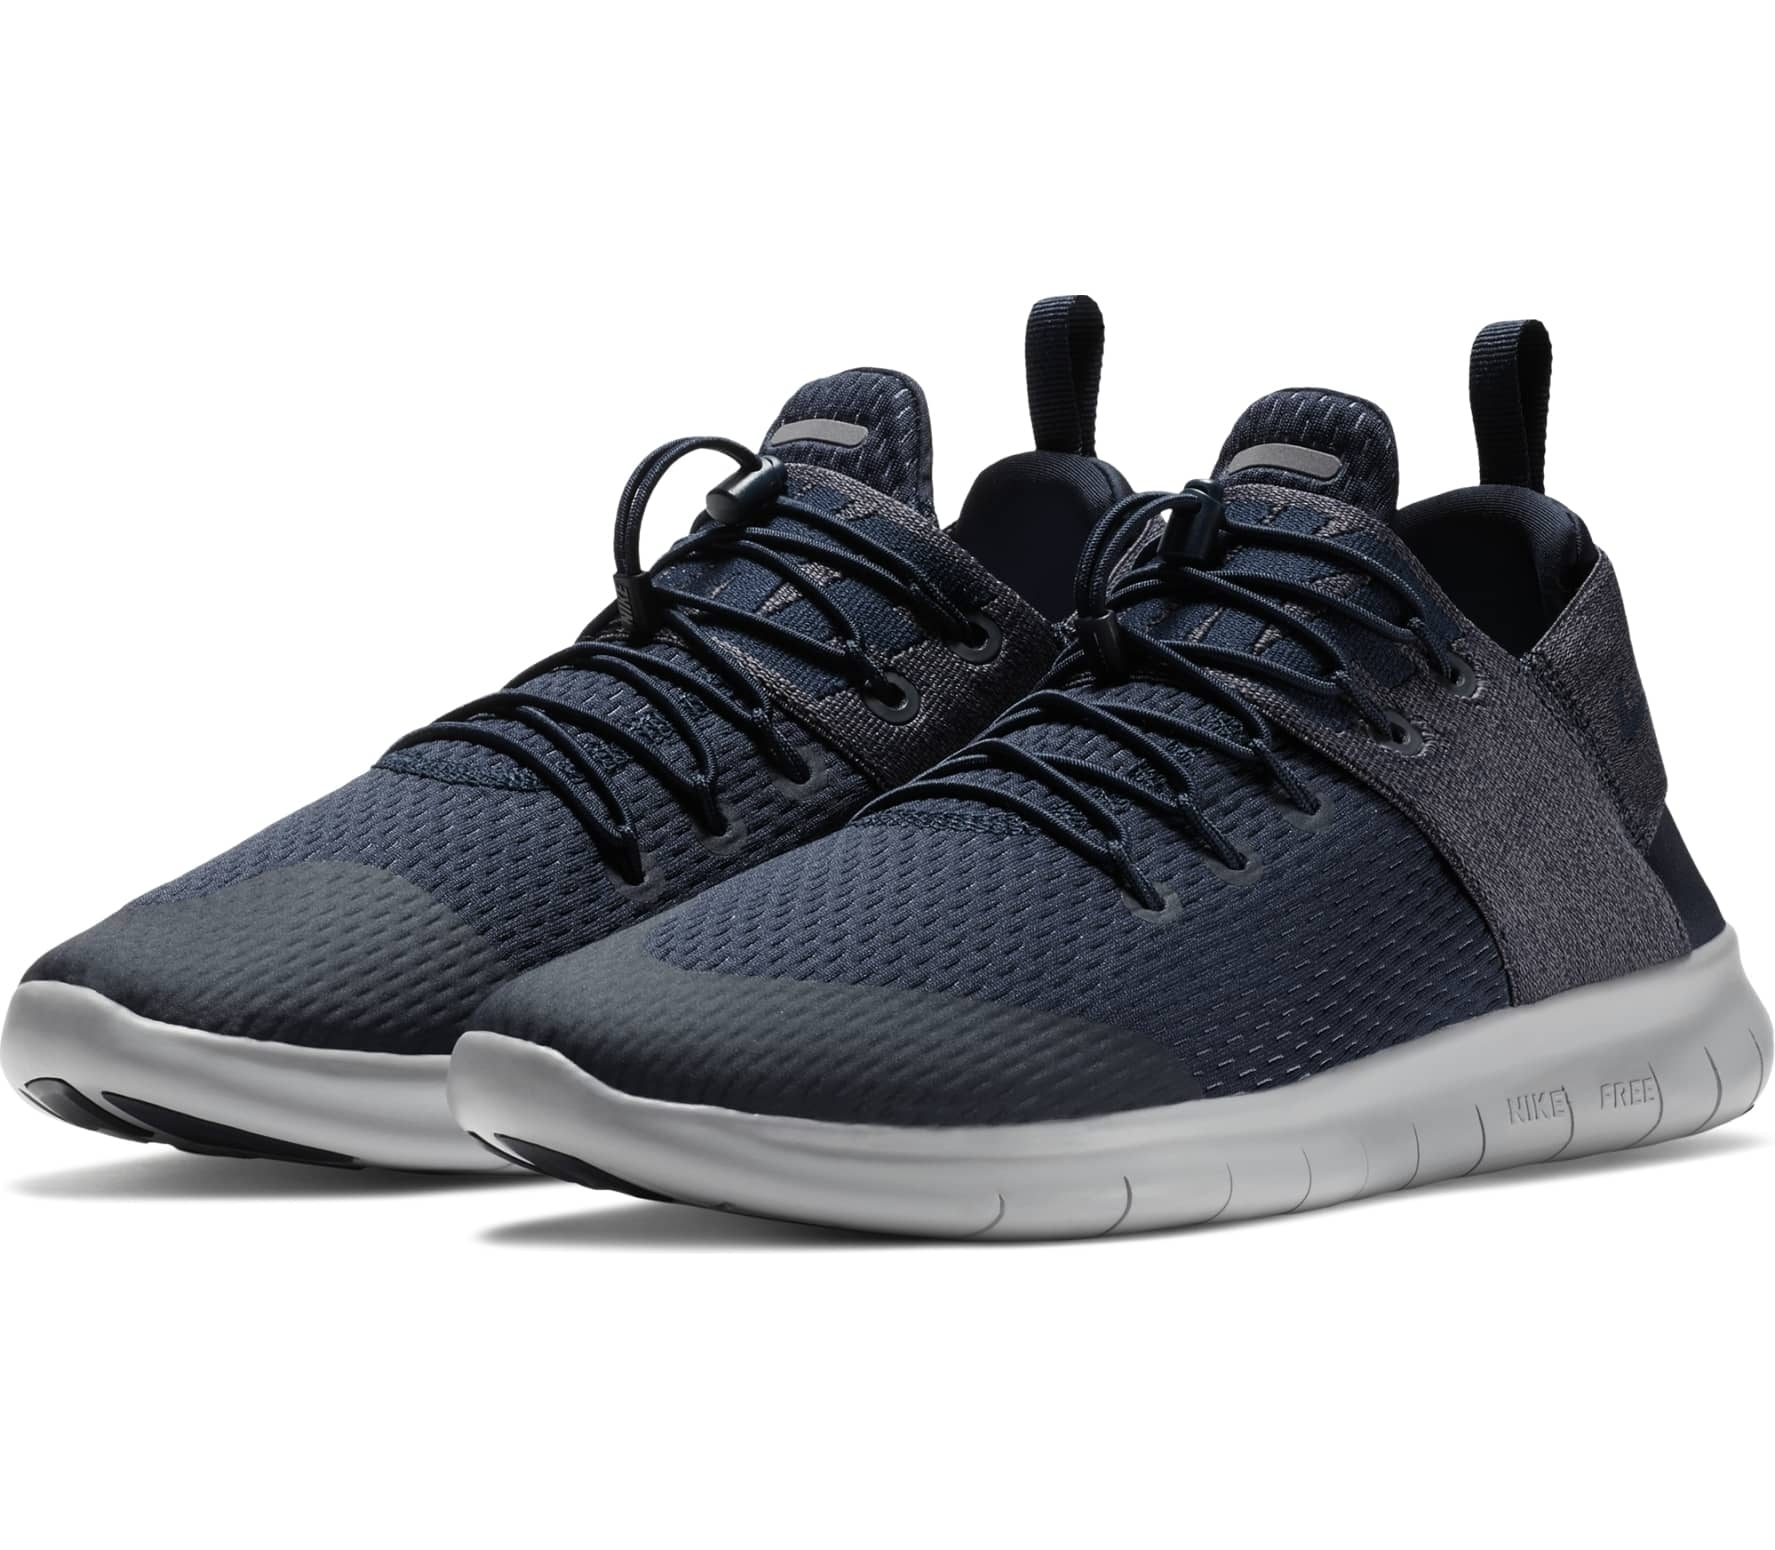 17e8f405ee786 Nike - Free RN Commuter 2017 men s running shoes (dark blue grey ...